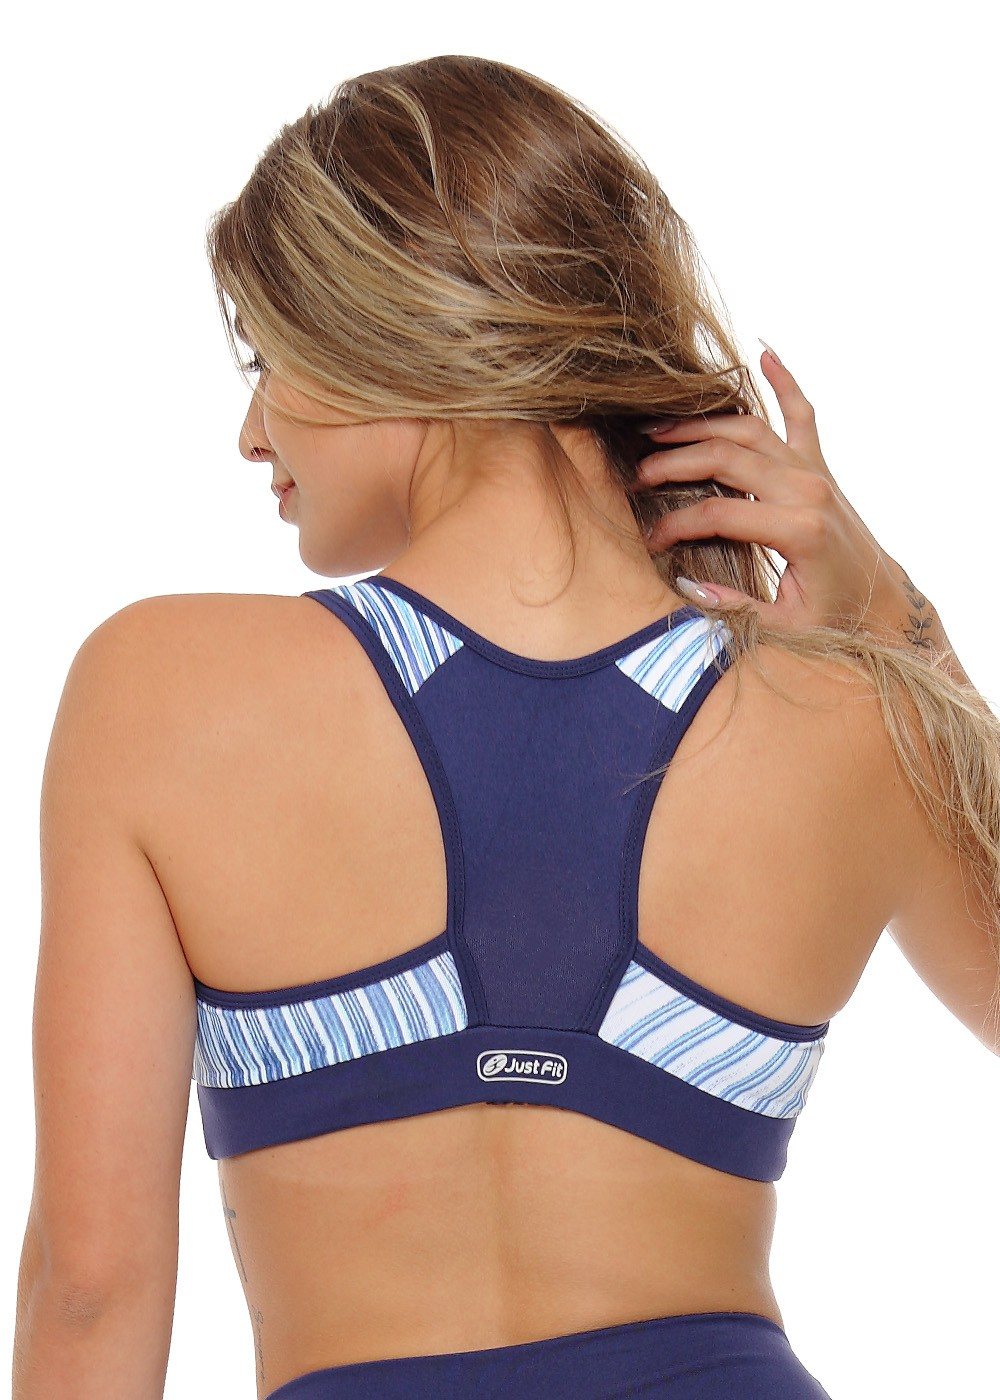 TOP CROSS JUST FIT - MARINHO/RISCA AZUL